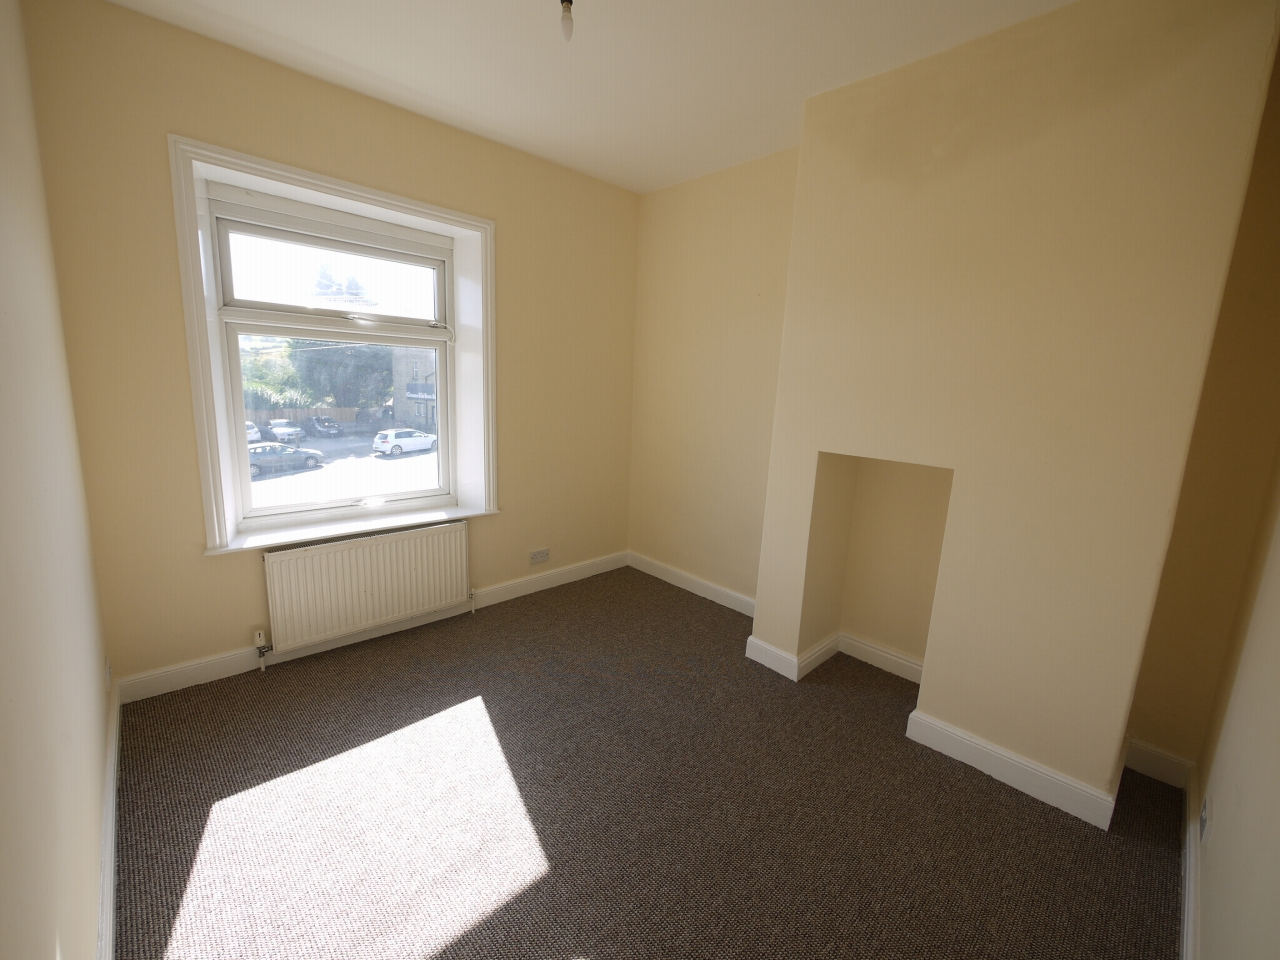 2 bedroom mid terraced house Let in Huddersfield - Photograph 5.